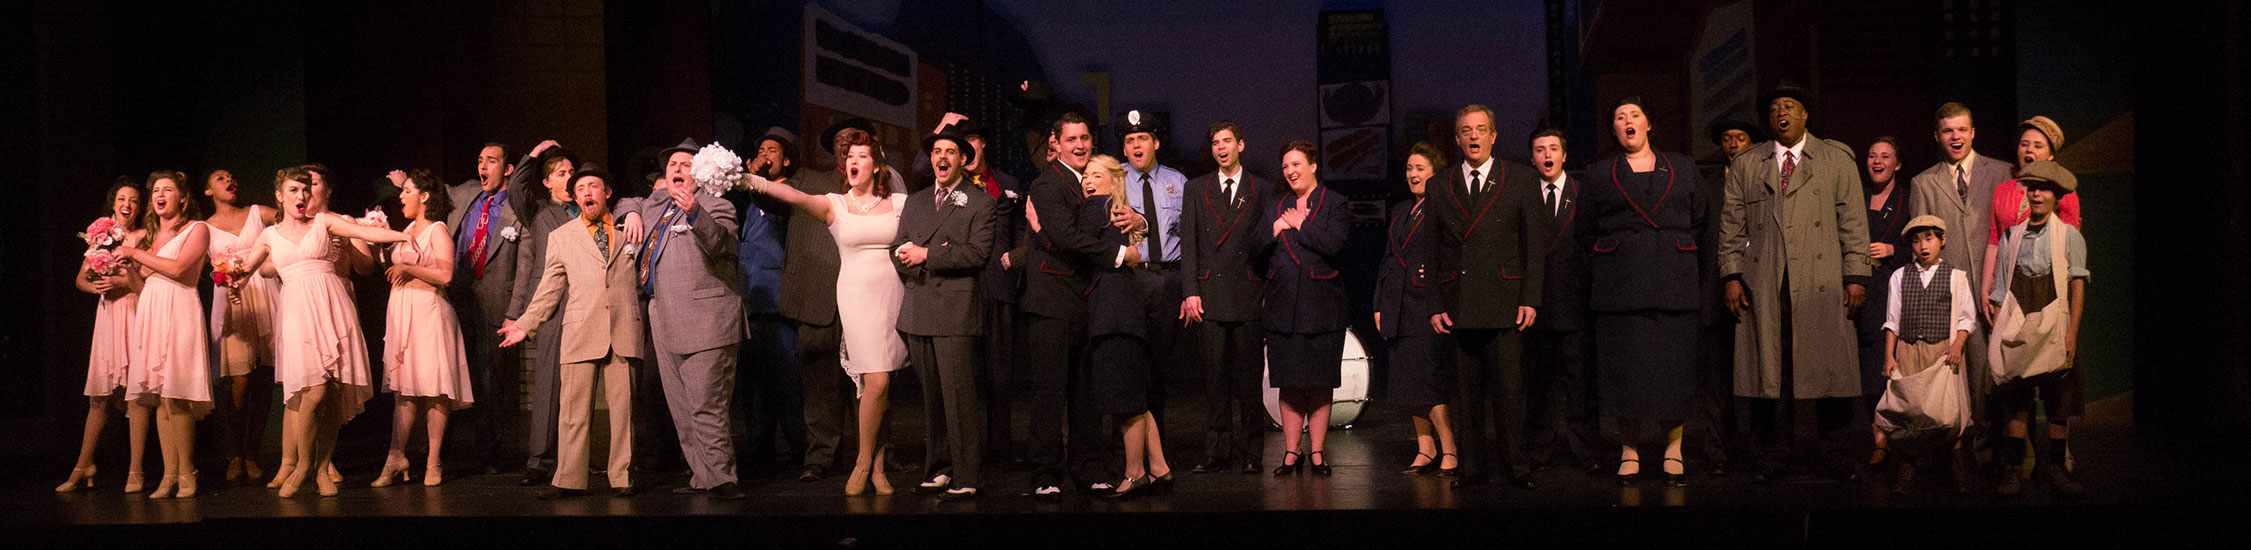 photo of the Guys and Dolls cast